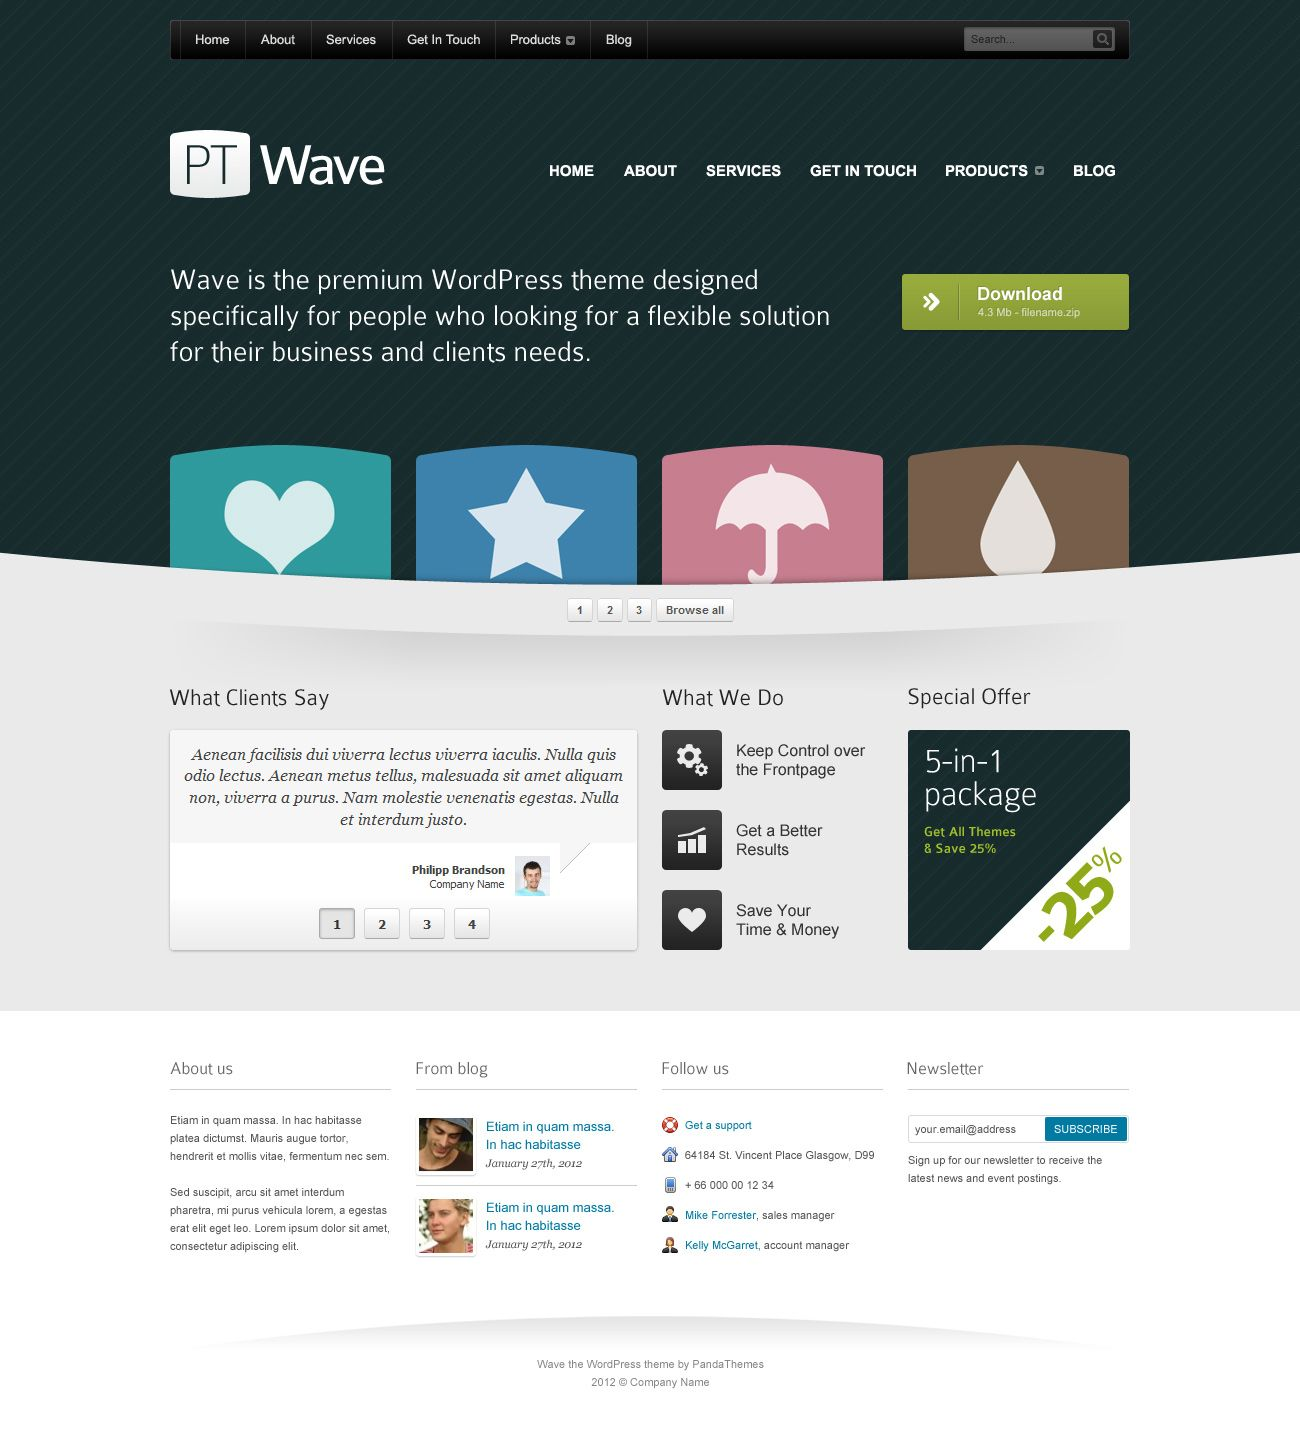 Homepage template for corporate website (PSD) | Web design ...